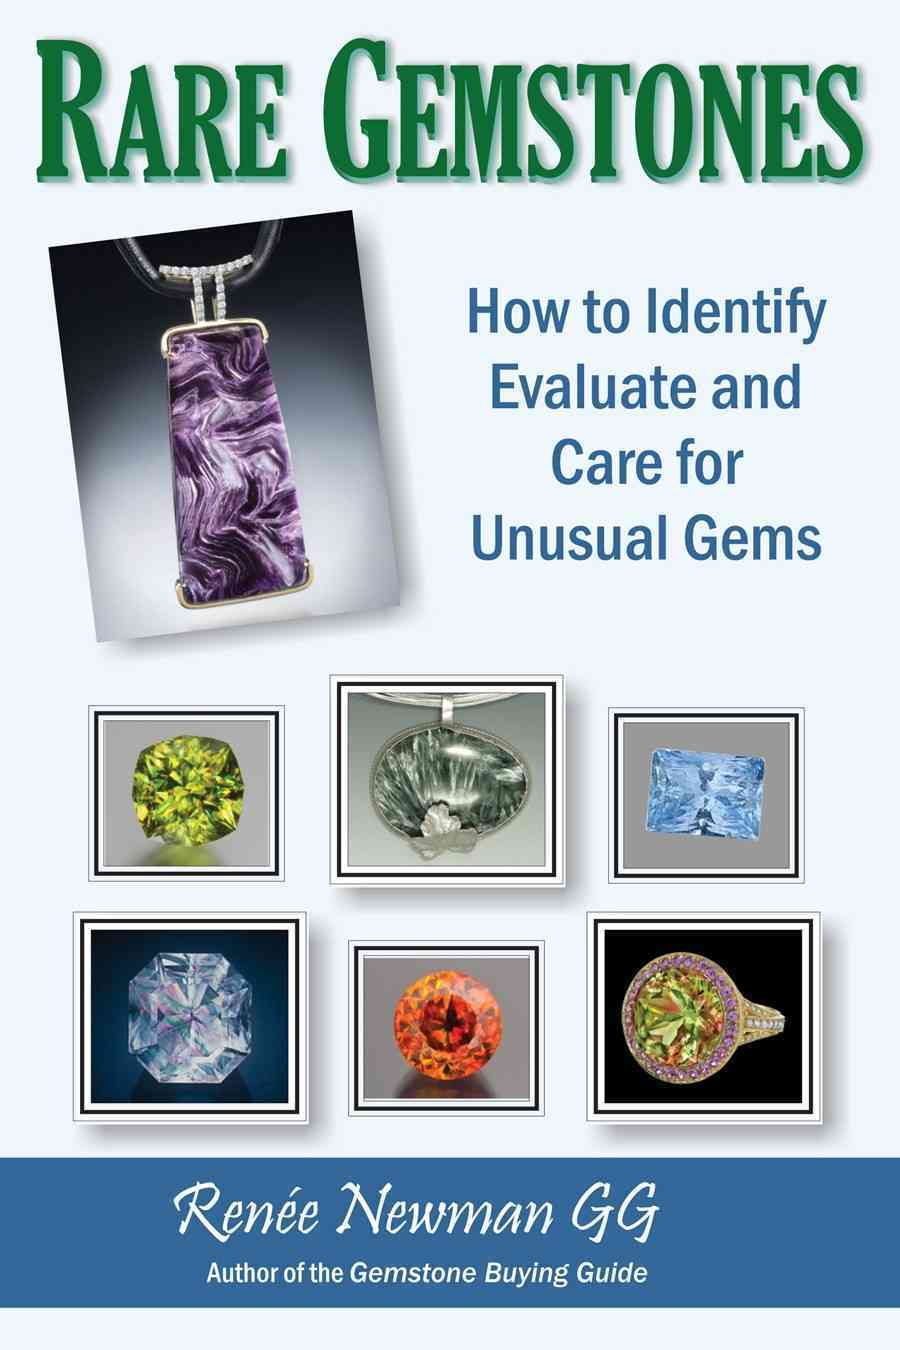 Rare Gemstones: How to Identify, Evaluate and Care for Unusual Gems (Paperback)